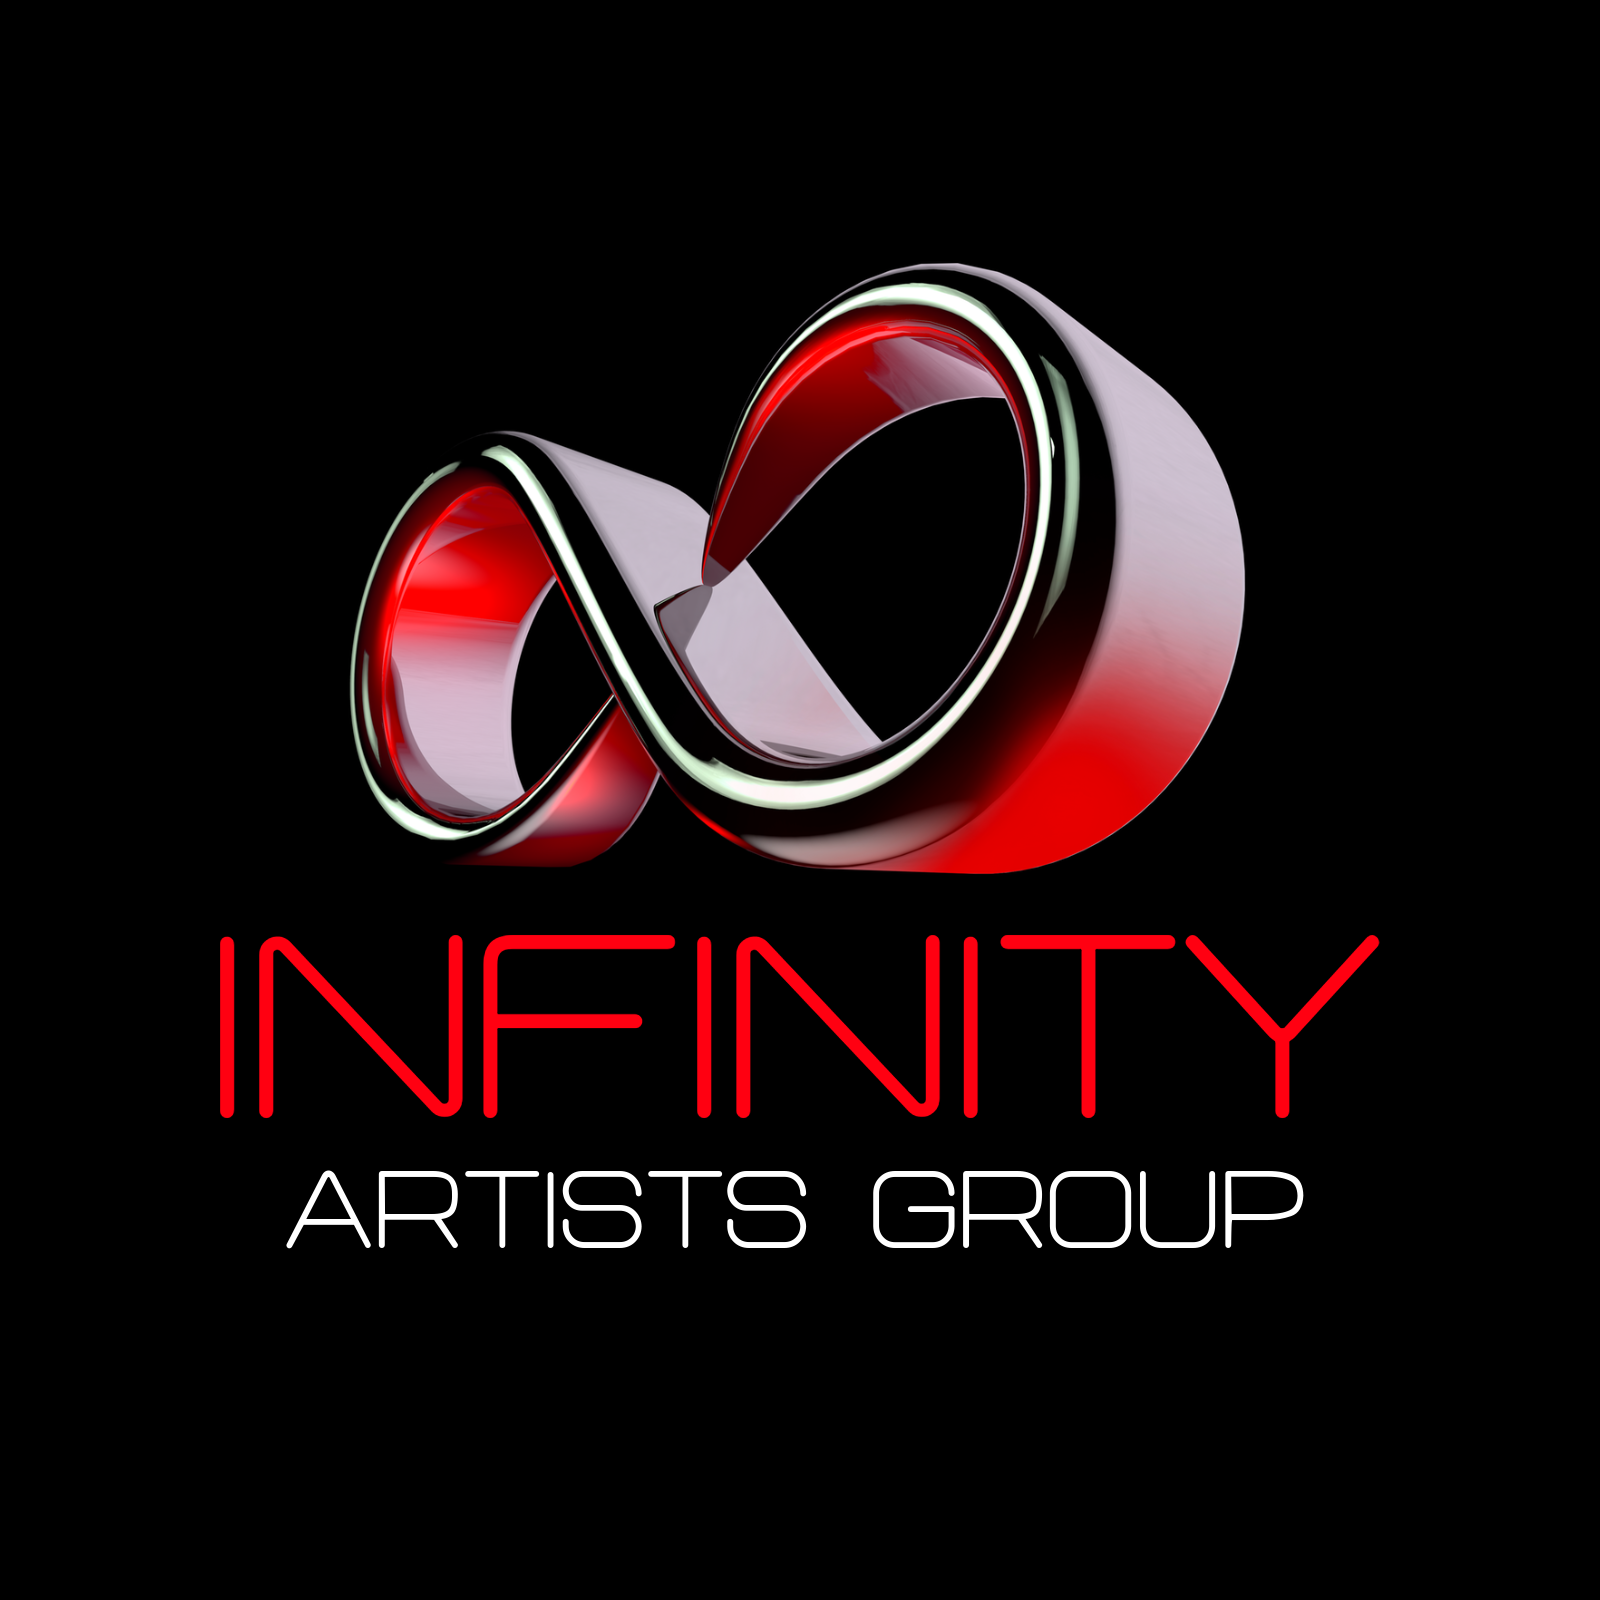 INFINITY ARTISTS GROUP